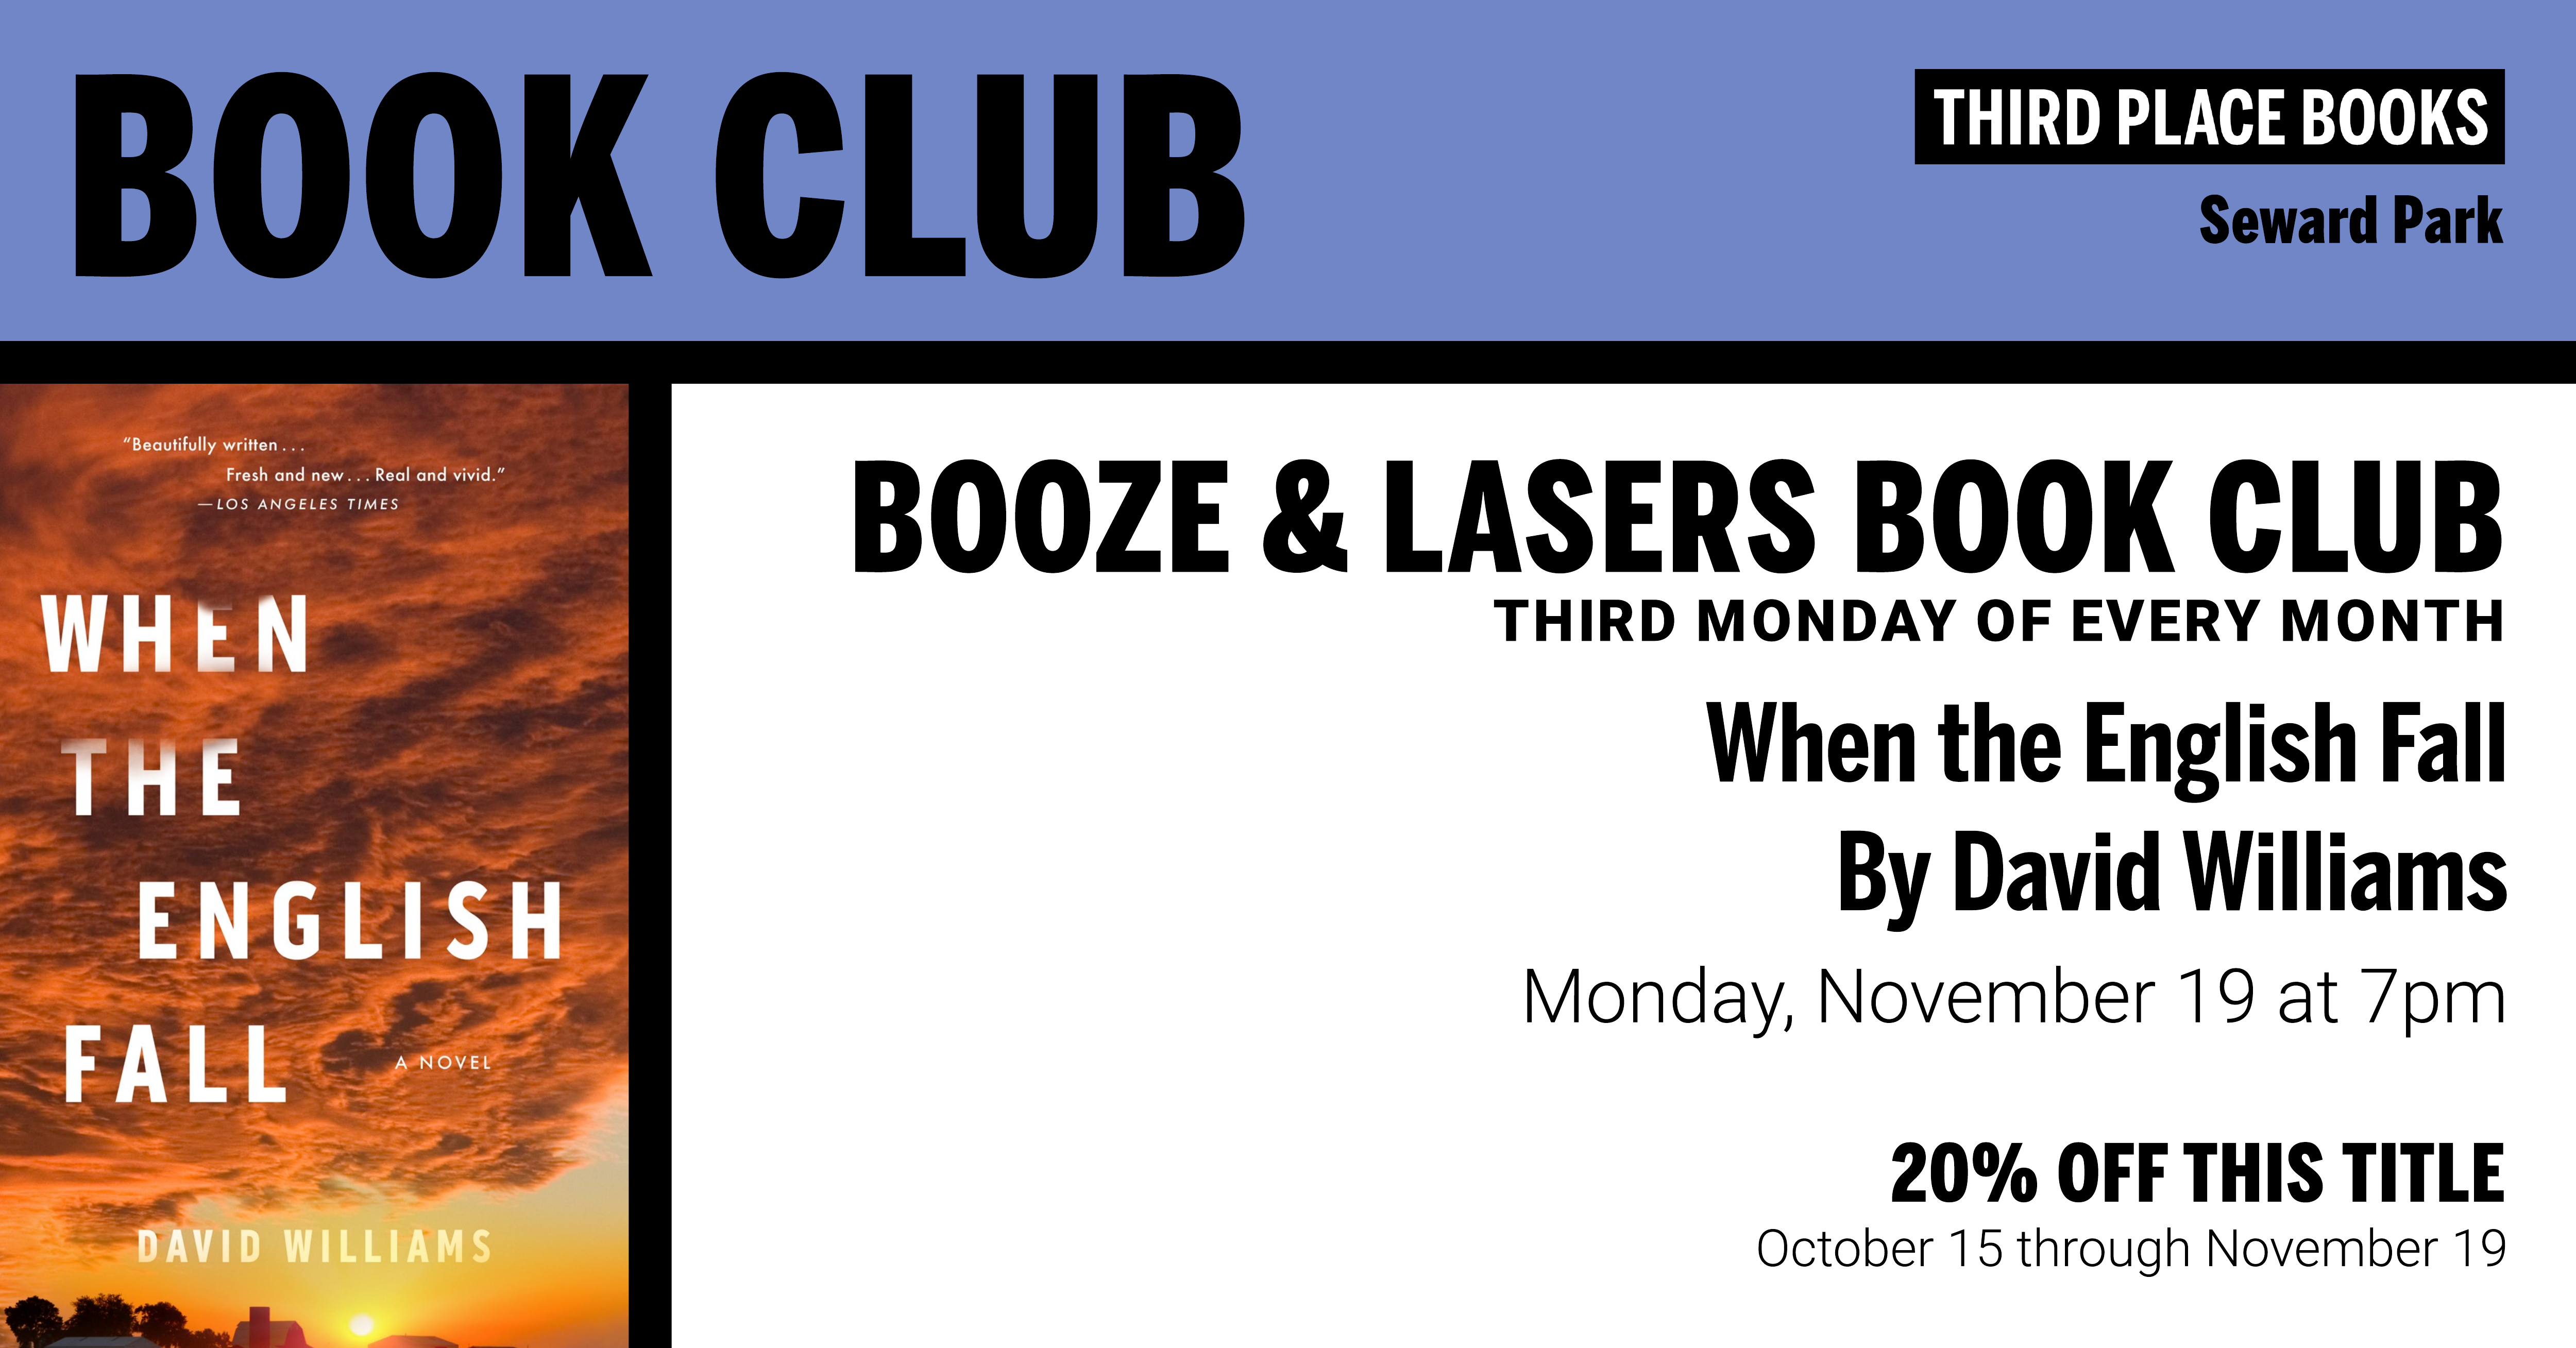 Booze & Lasers Book Club reading When the English Fall by David Williams on Monday, November 19 at 7pm